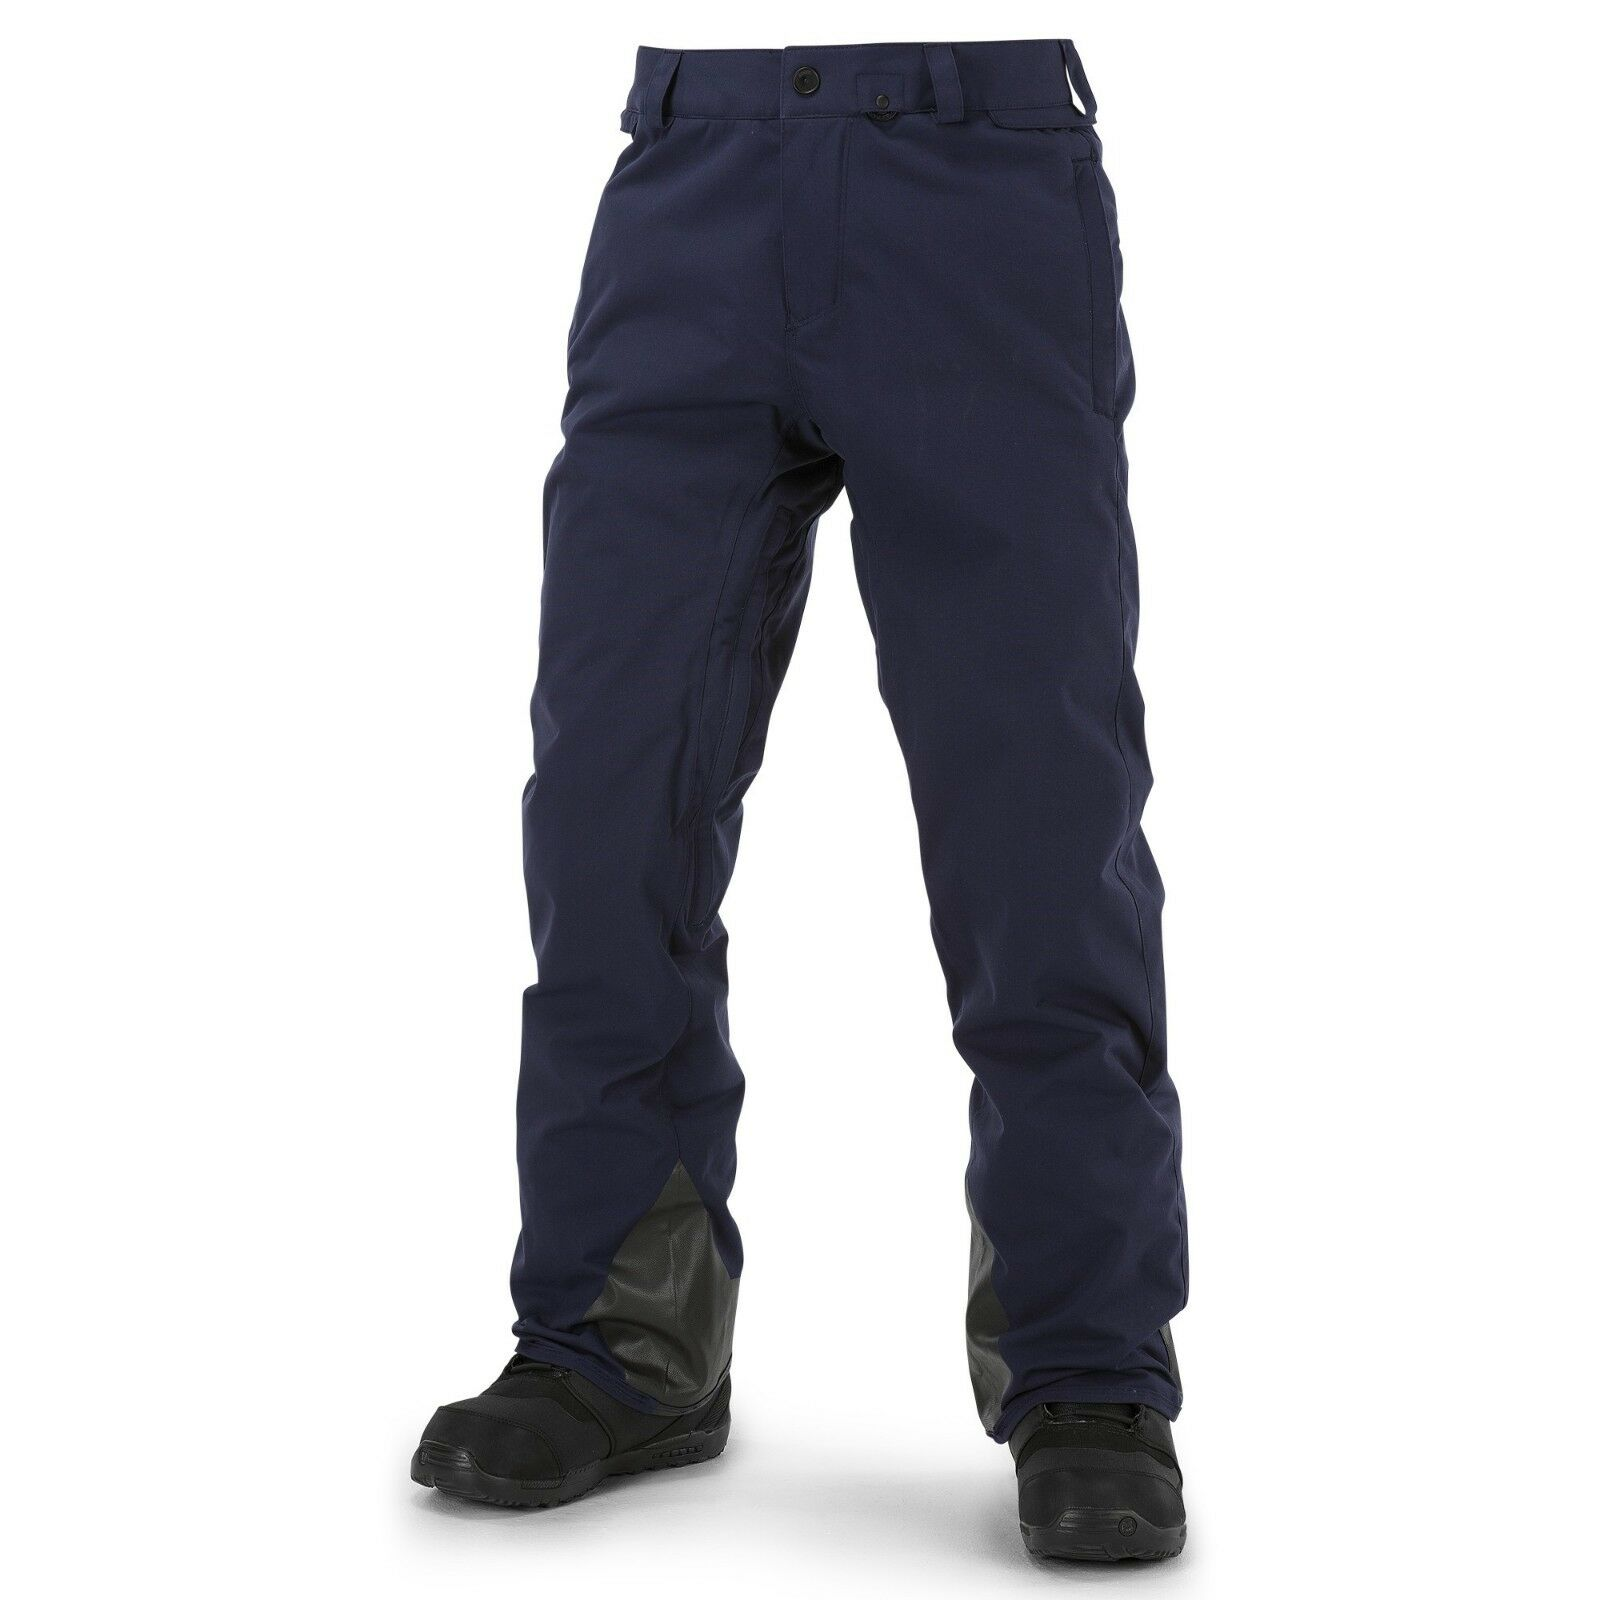 VOLCOM Men's MOORE Snow Pants - NVY - Large - NWT